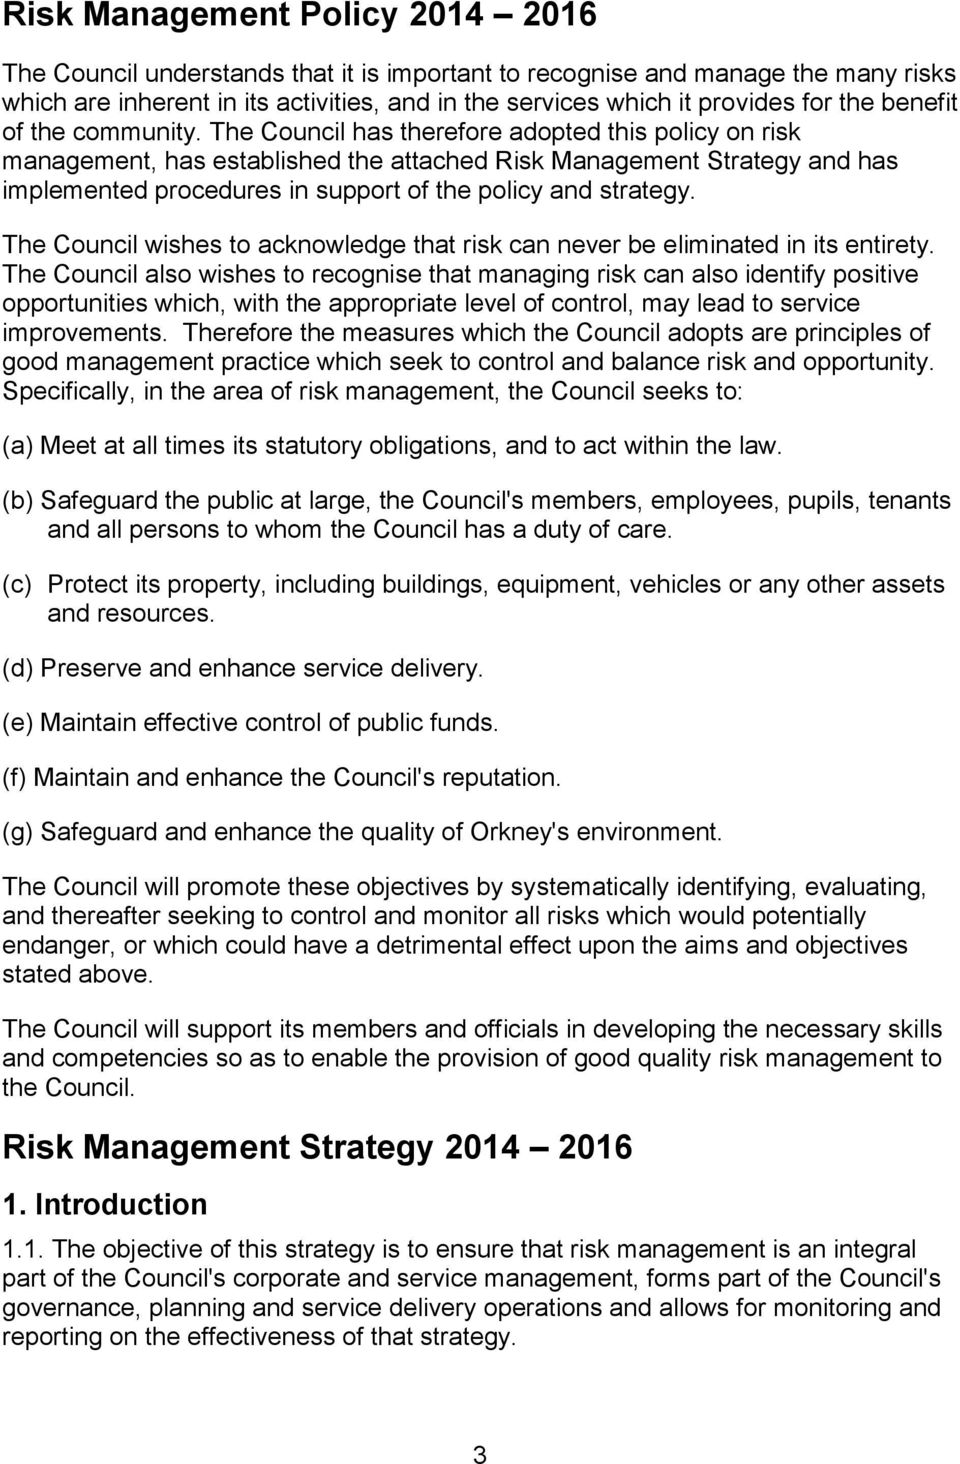 The Council has therefore adopted this policy on risk management, has established the attached Risk Management Strategy and has implemented procedures in support of the policy and strategy.